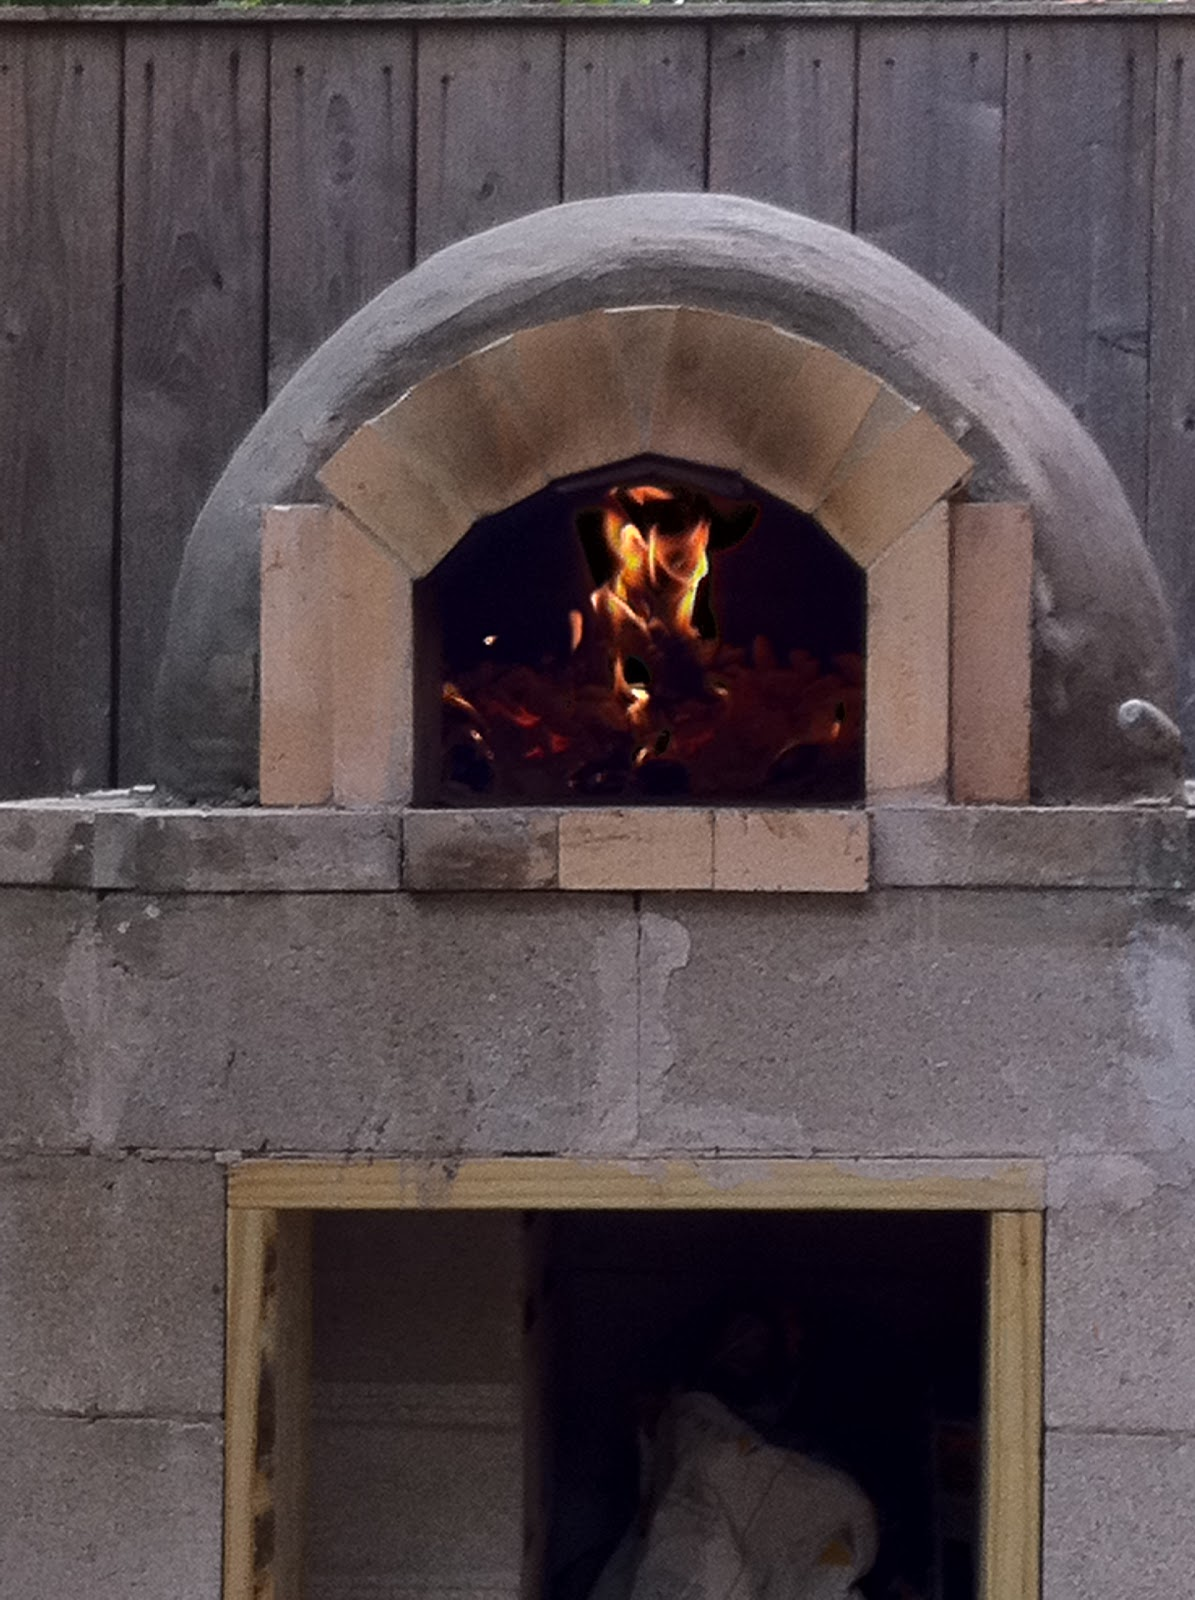 how to cook frozen pizza oven